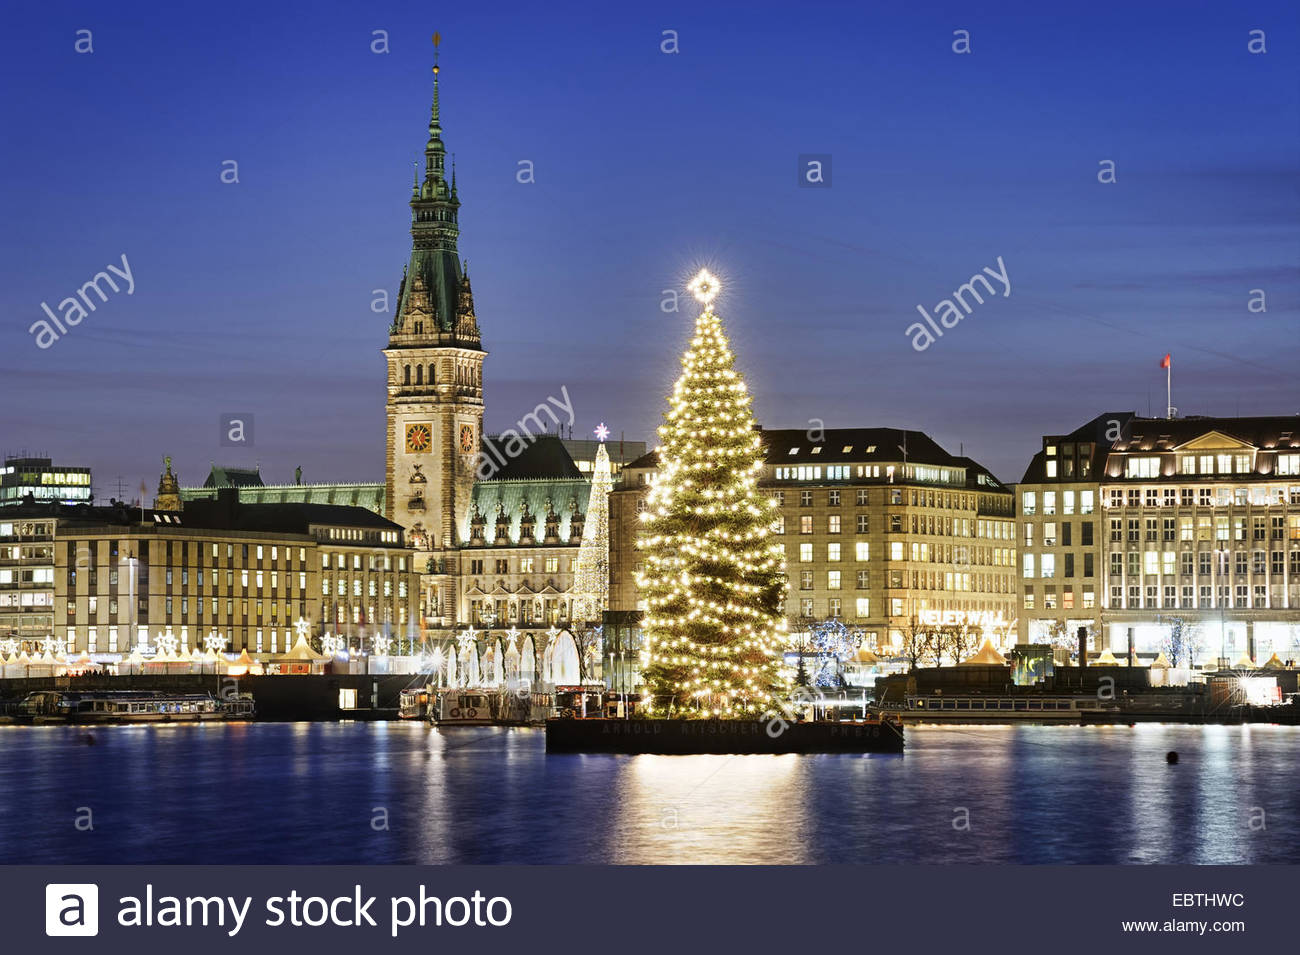 view over the Inner Alster Lake at the city centre in Christmas illumination with the town hall and a big Christmas - Stock Image